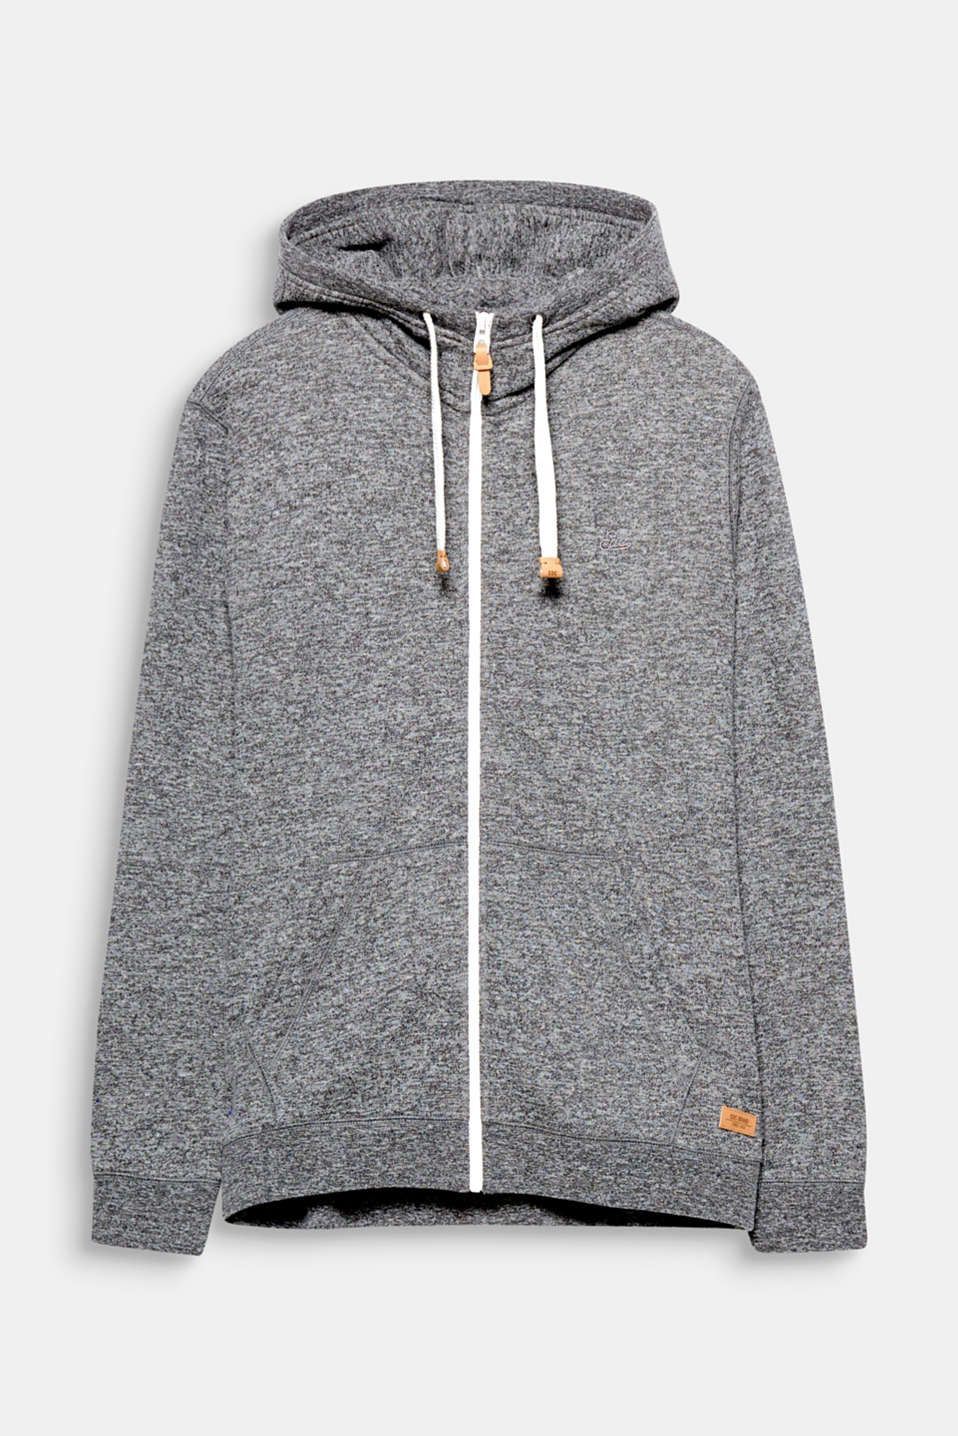 An edc classic is back! This hoodie in melange sweatshirt fabric and super soft interior is a style that just has to be in your wardrobe.